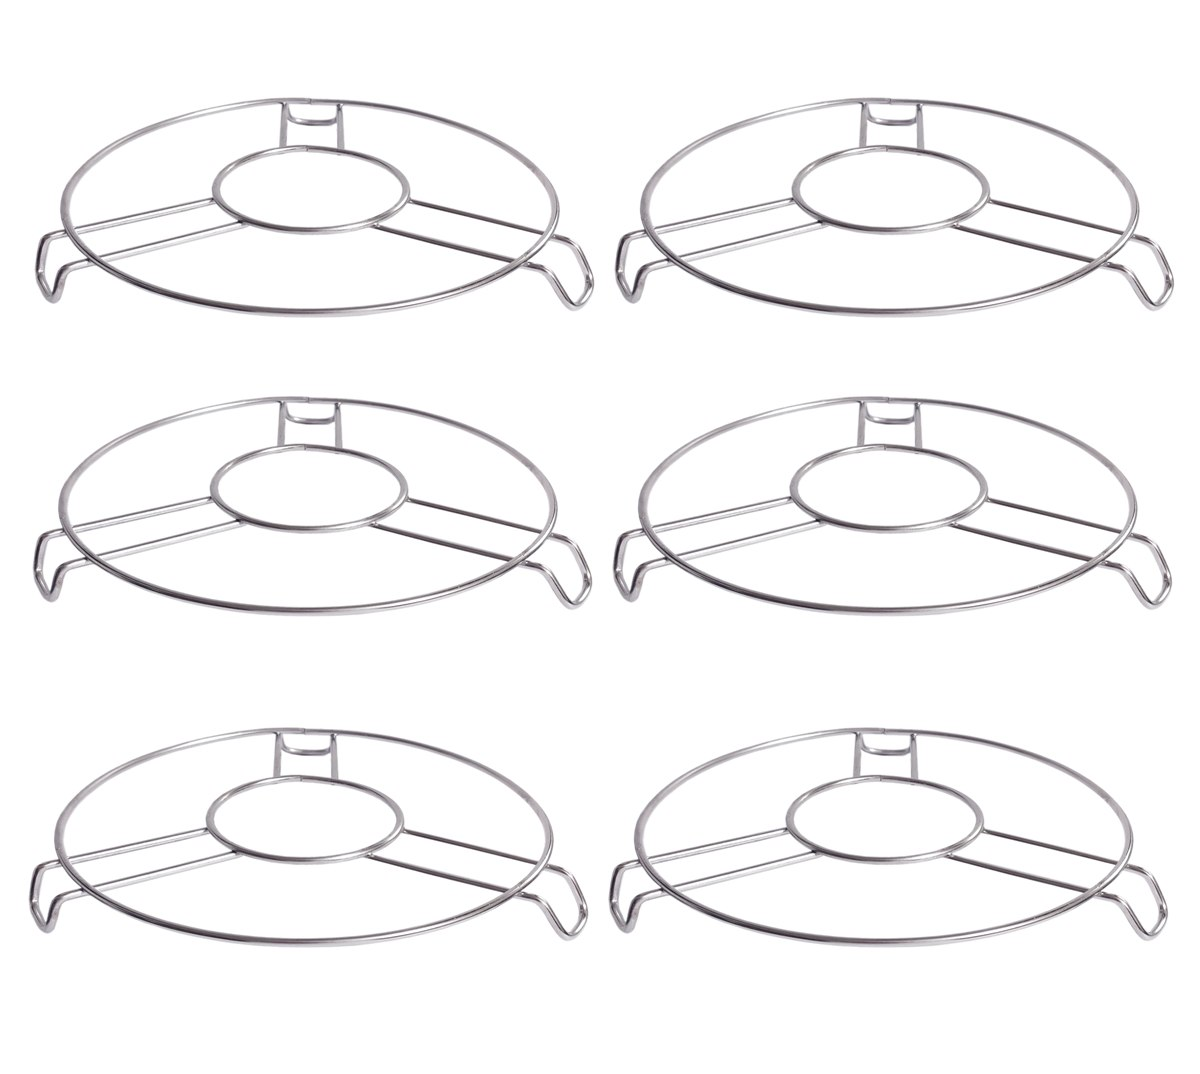 PRODUCTMINE Stainless Steel Heat Resistant BIG Size Hot Pan / Pot Stand Cooker Jali ,Table Ring DIAMETER 17 CM  6 Pc